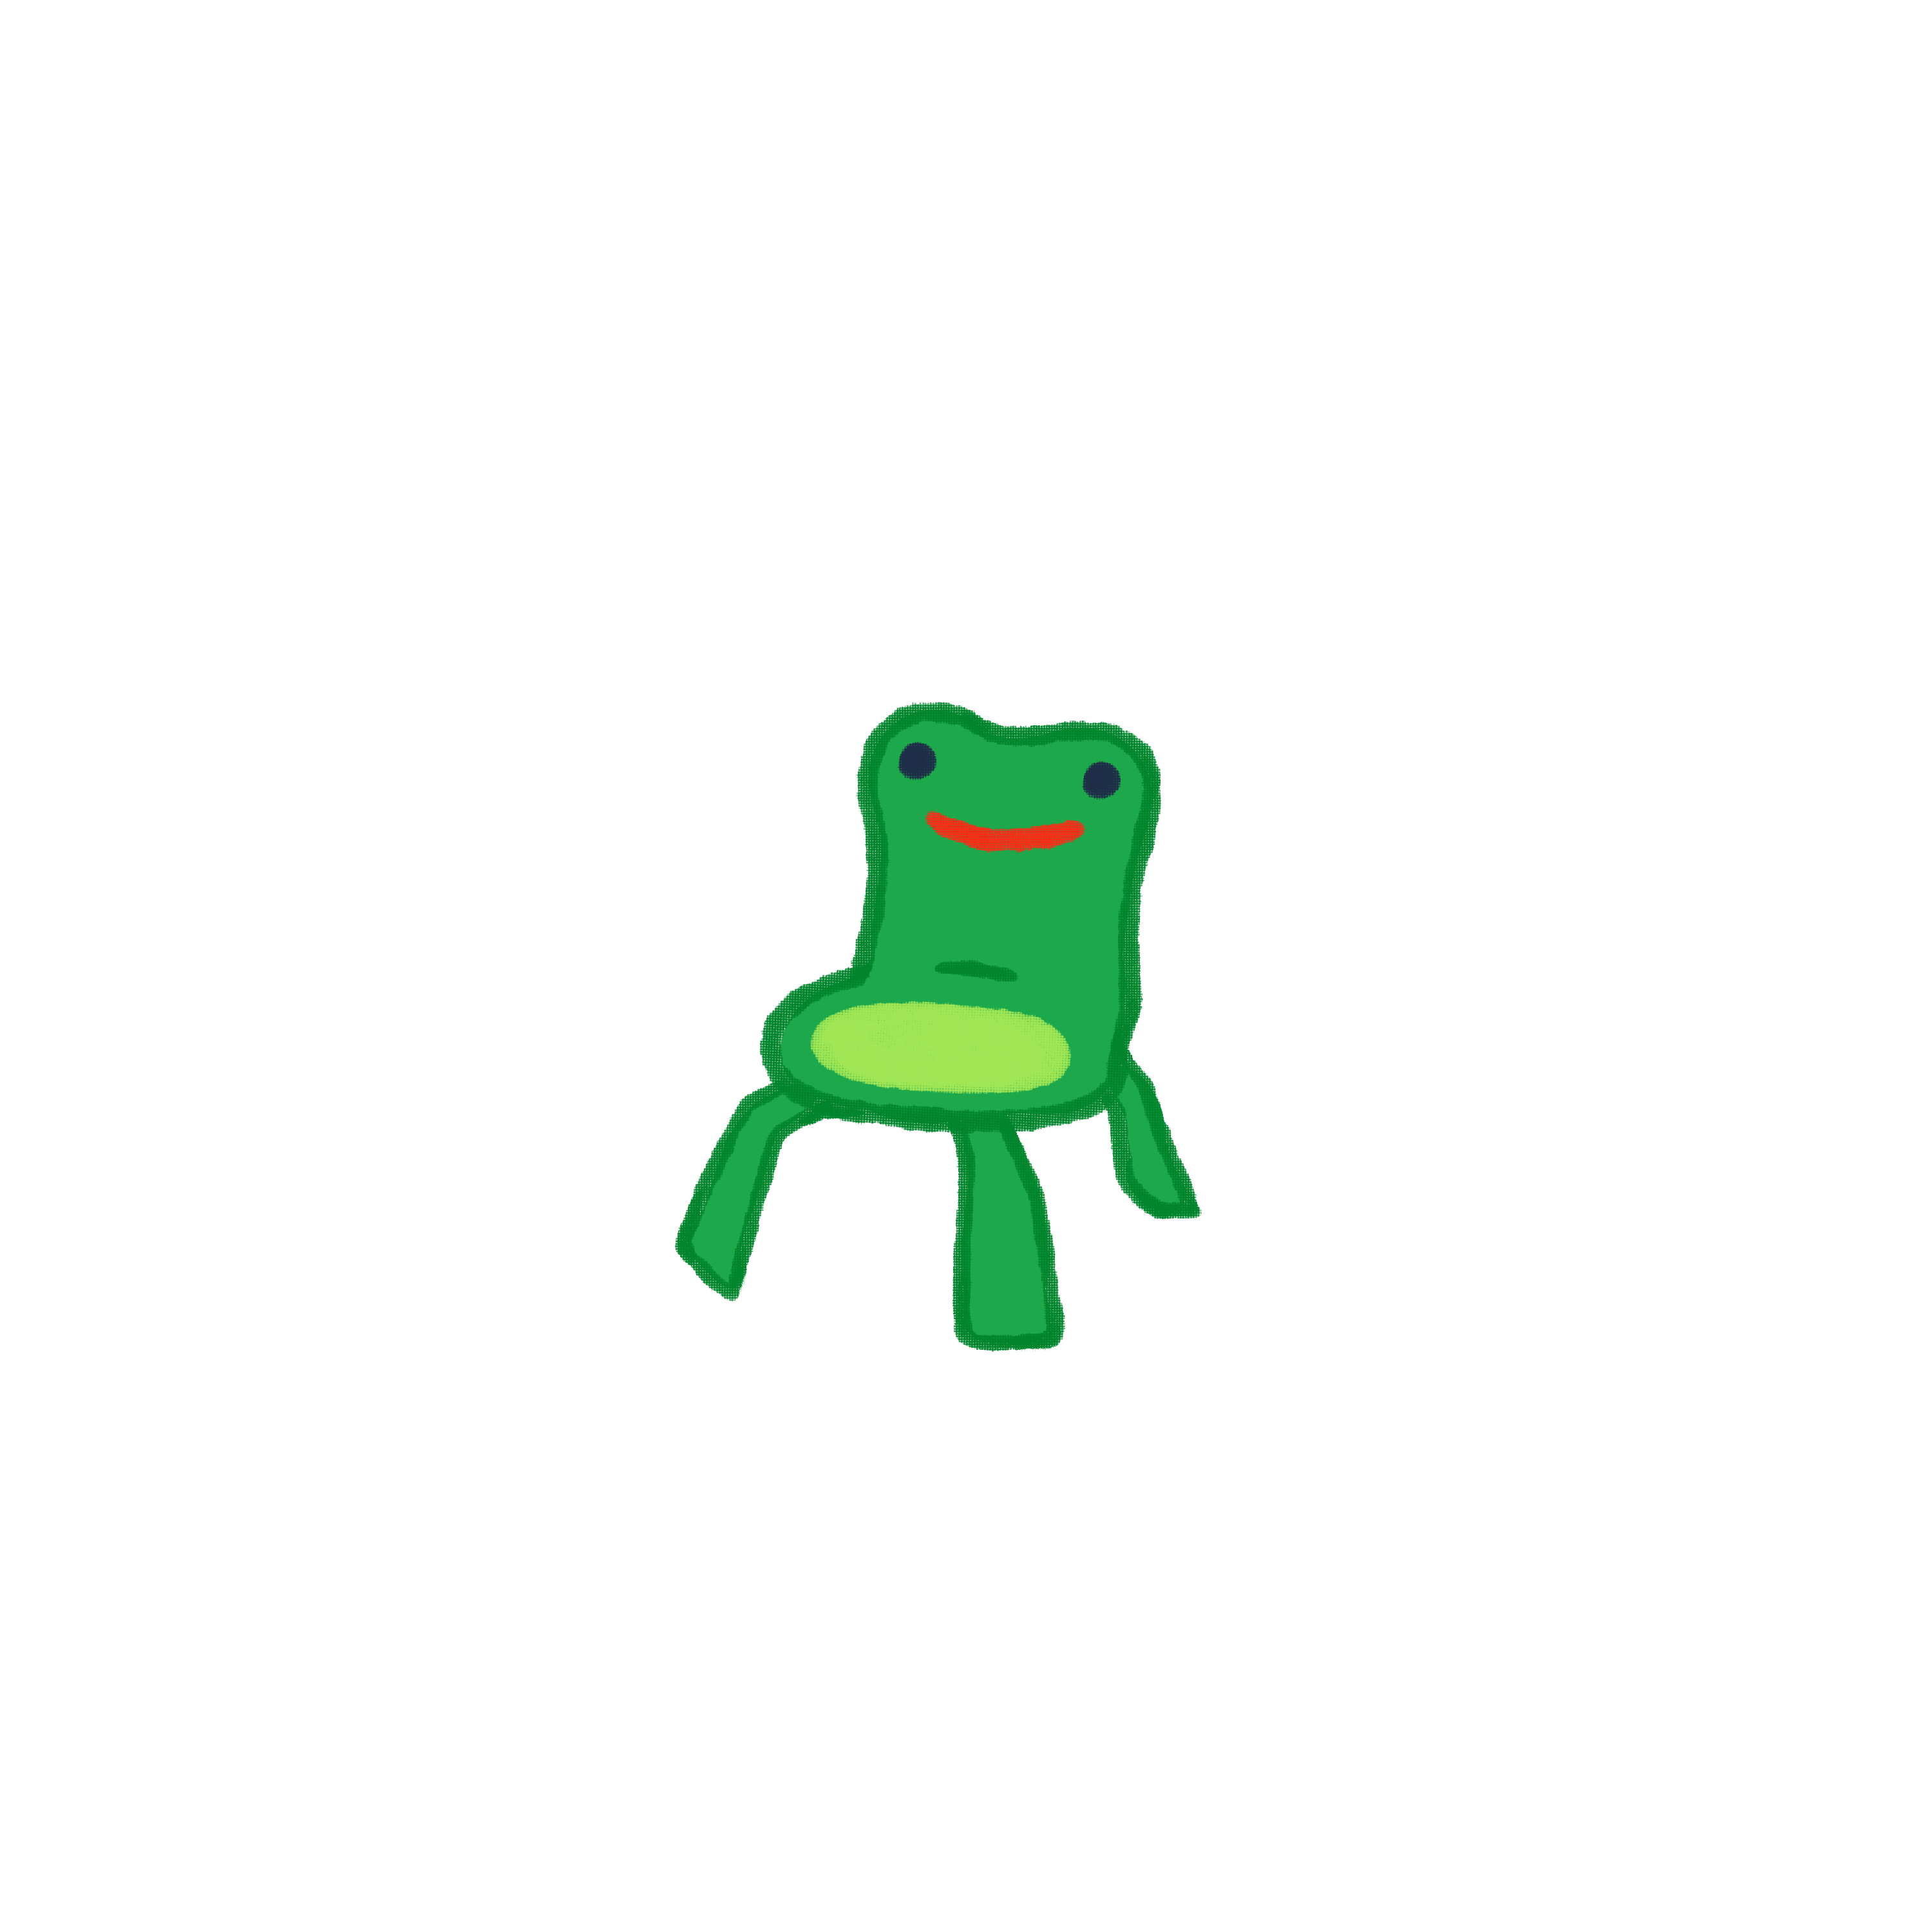 Froggy Chair By Lexissketches On Newgrounds